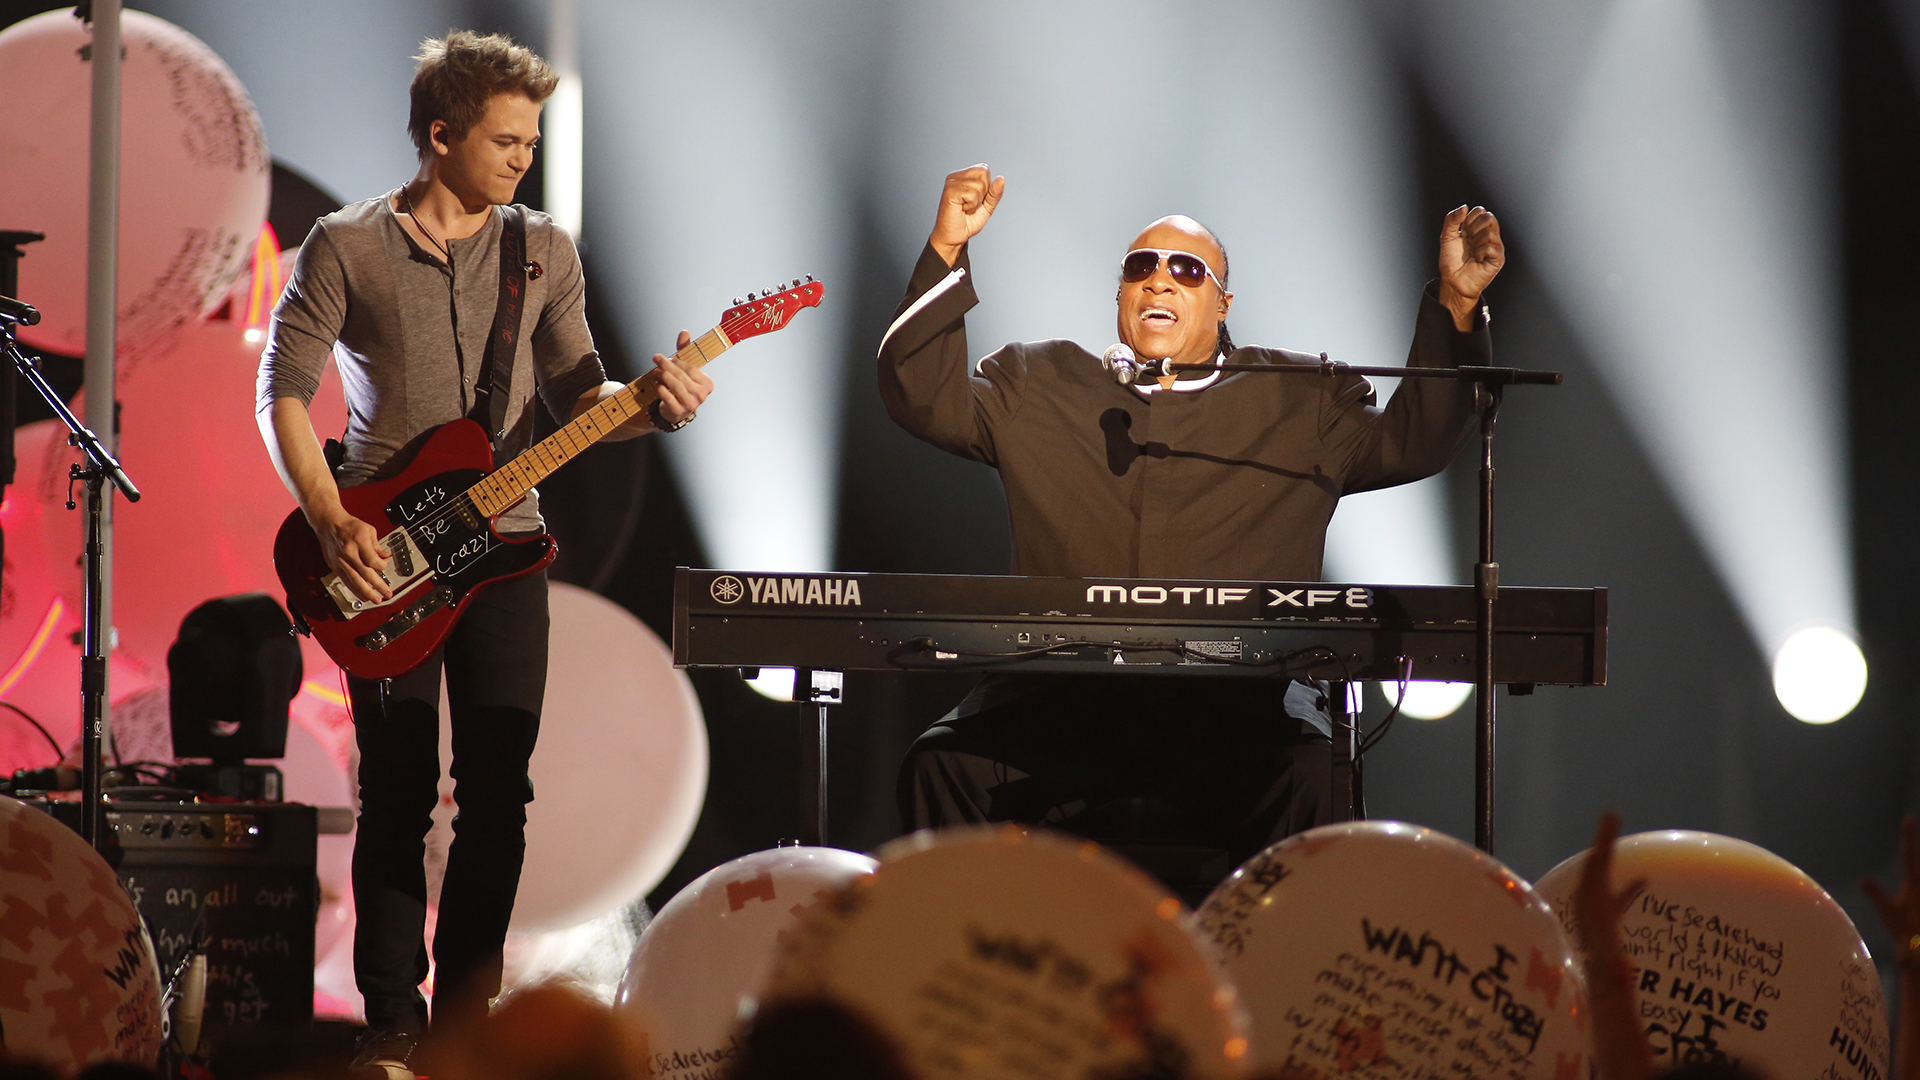 8. Hunter Hayes and Stevie Wonder perform